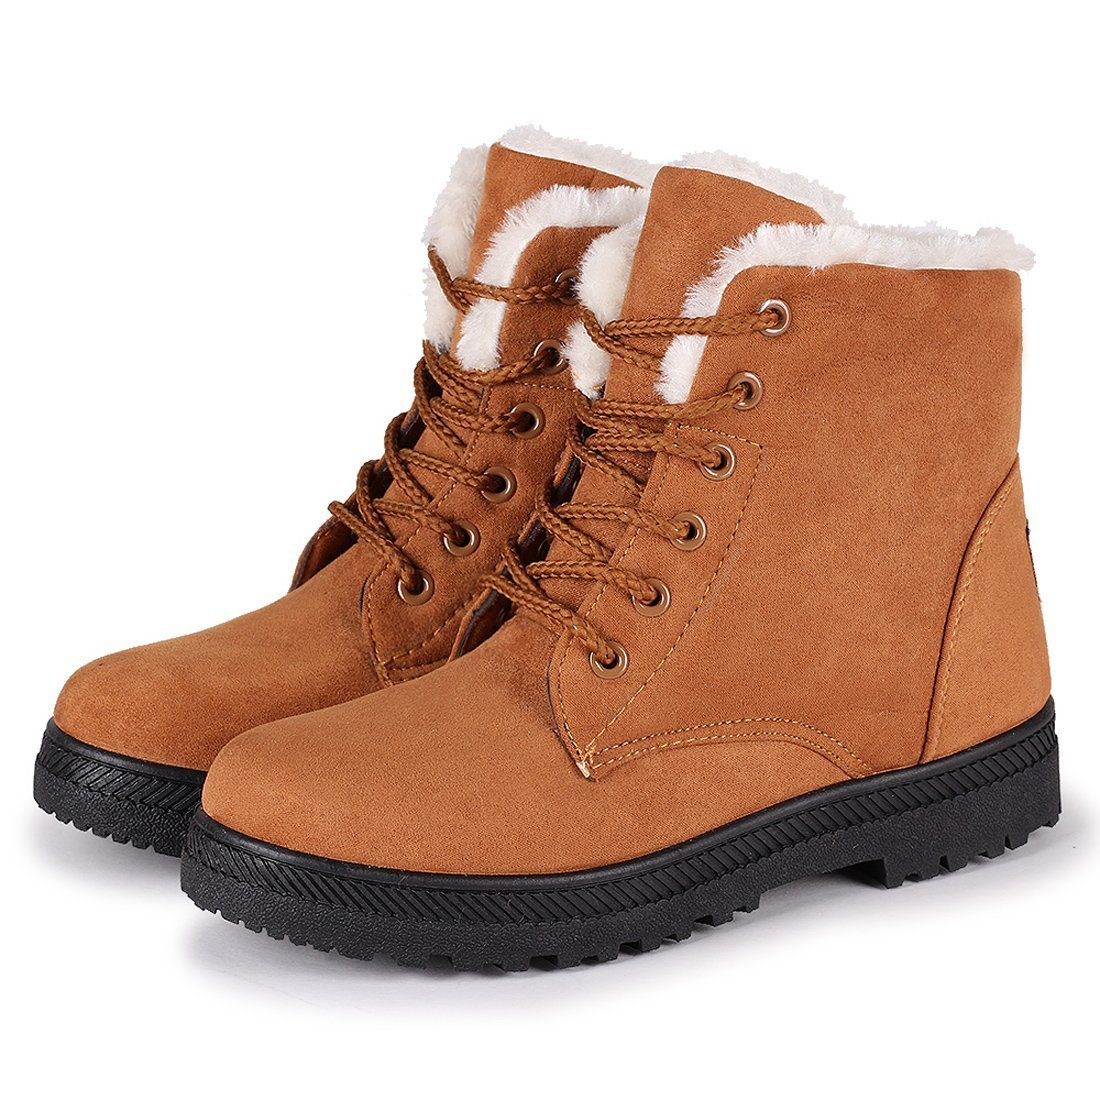 NOT100 Womens Snow Boots for Winter Ankle Boots Combat Walking Shoes Booties Brown Orange Size 8